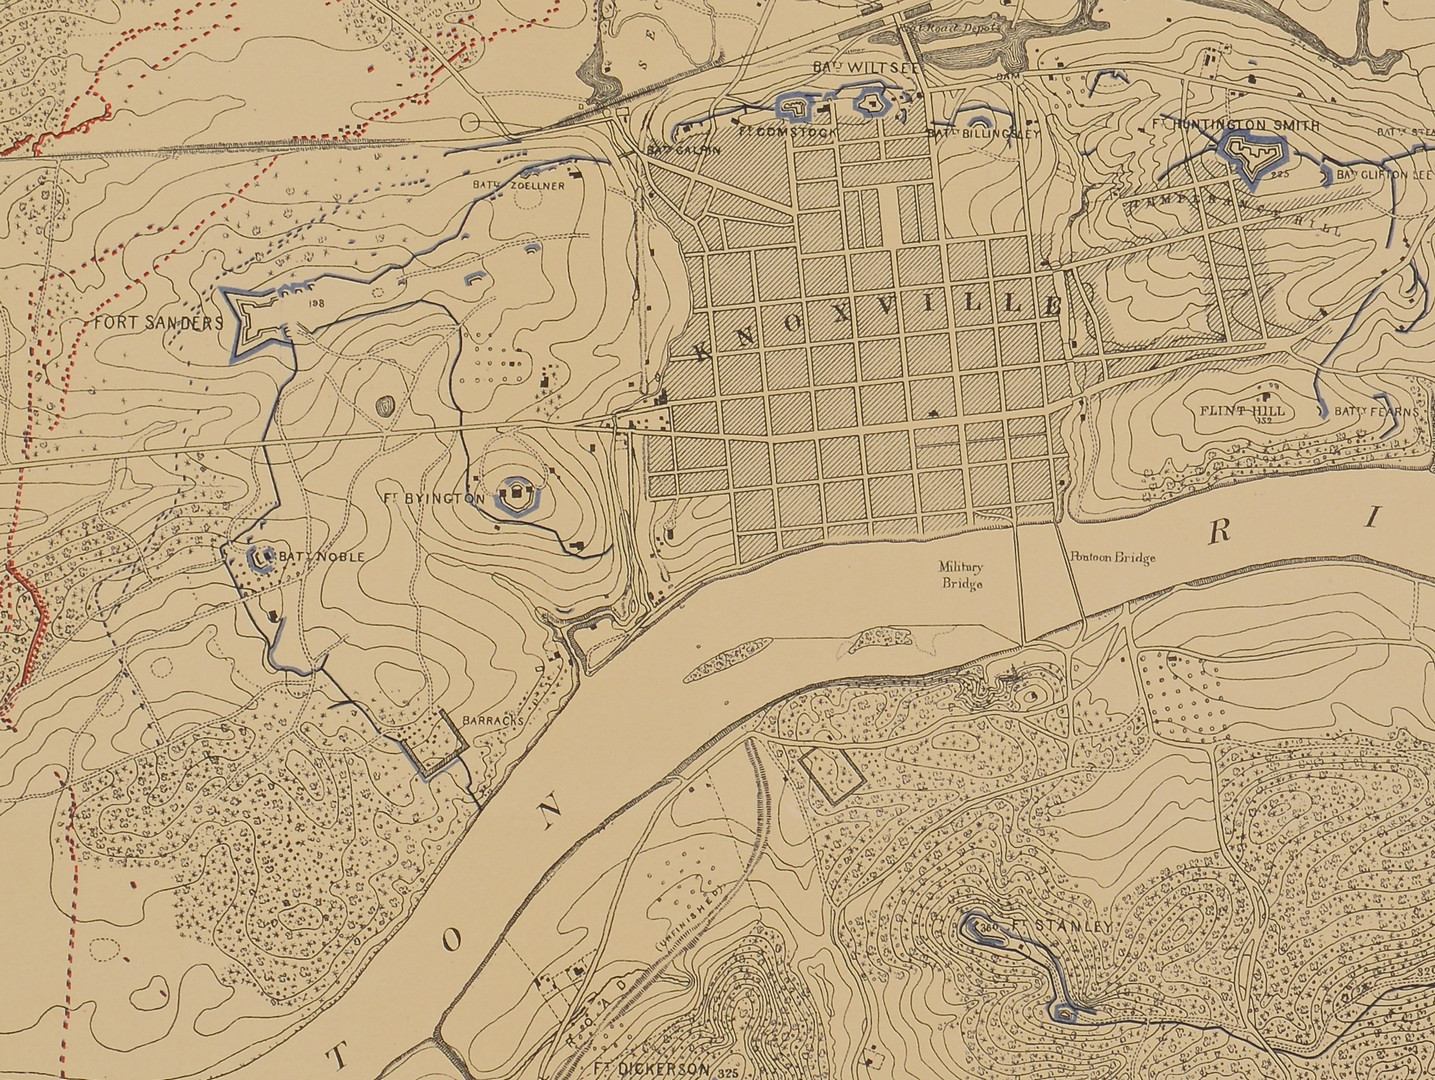 Lot 105: Knoxville Civil War Map, Poe